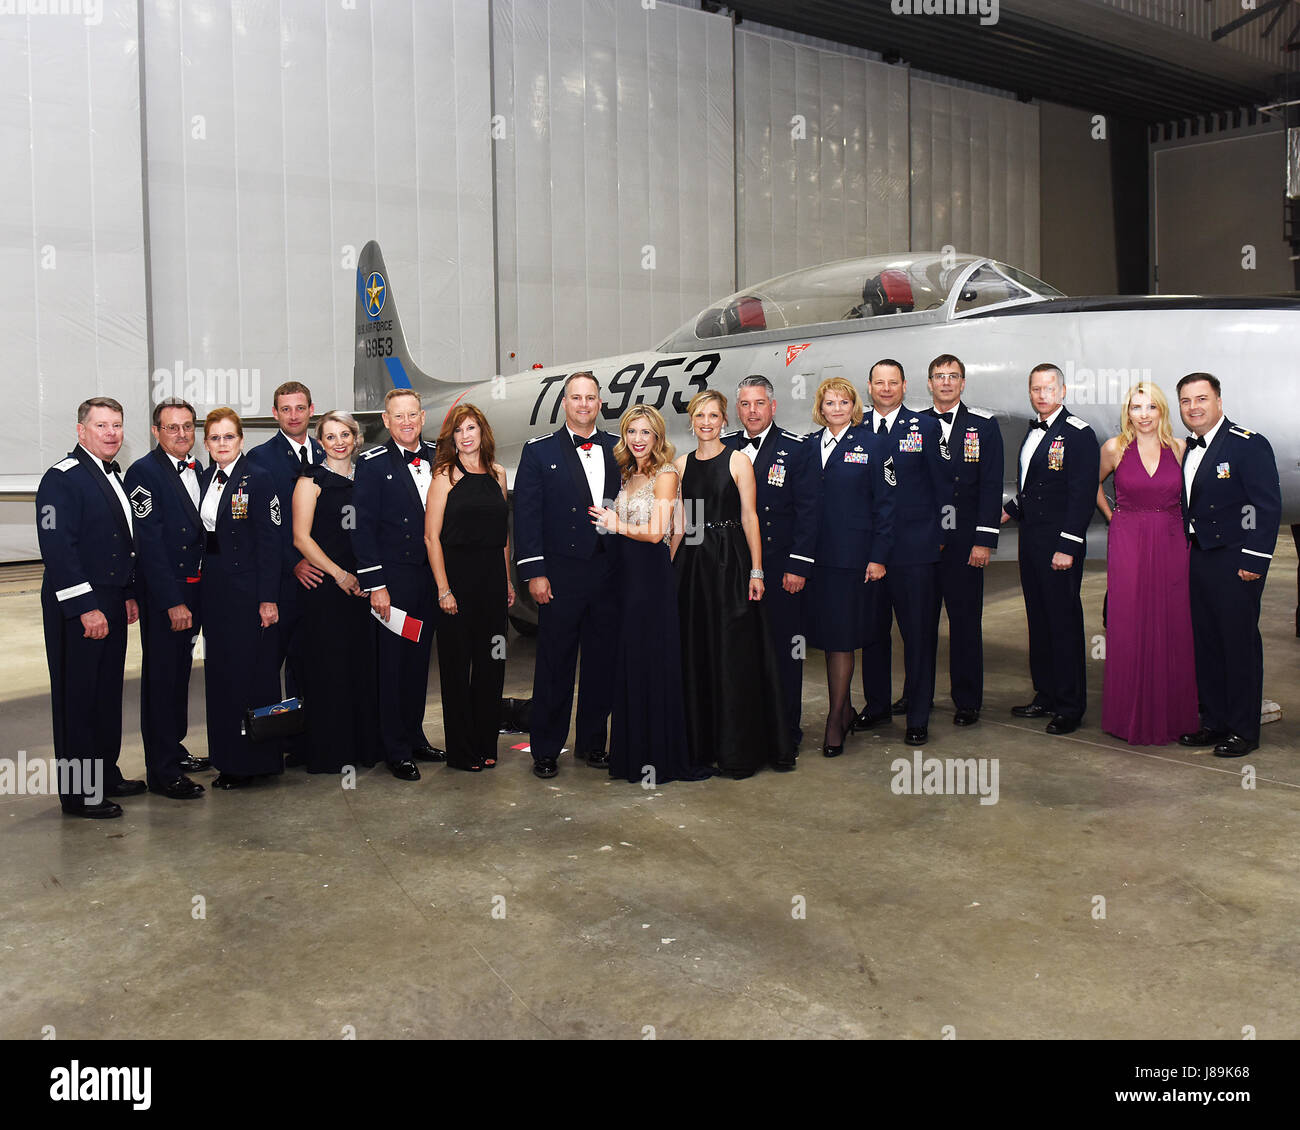 Members of the 147th Attack Wing, 149th Fighter Wing, and Texas Military Department Leadership attend a gala at - Stock Image